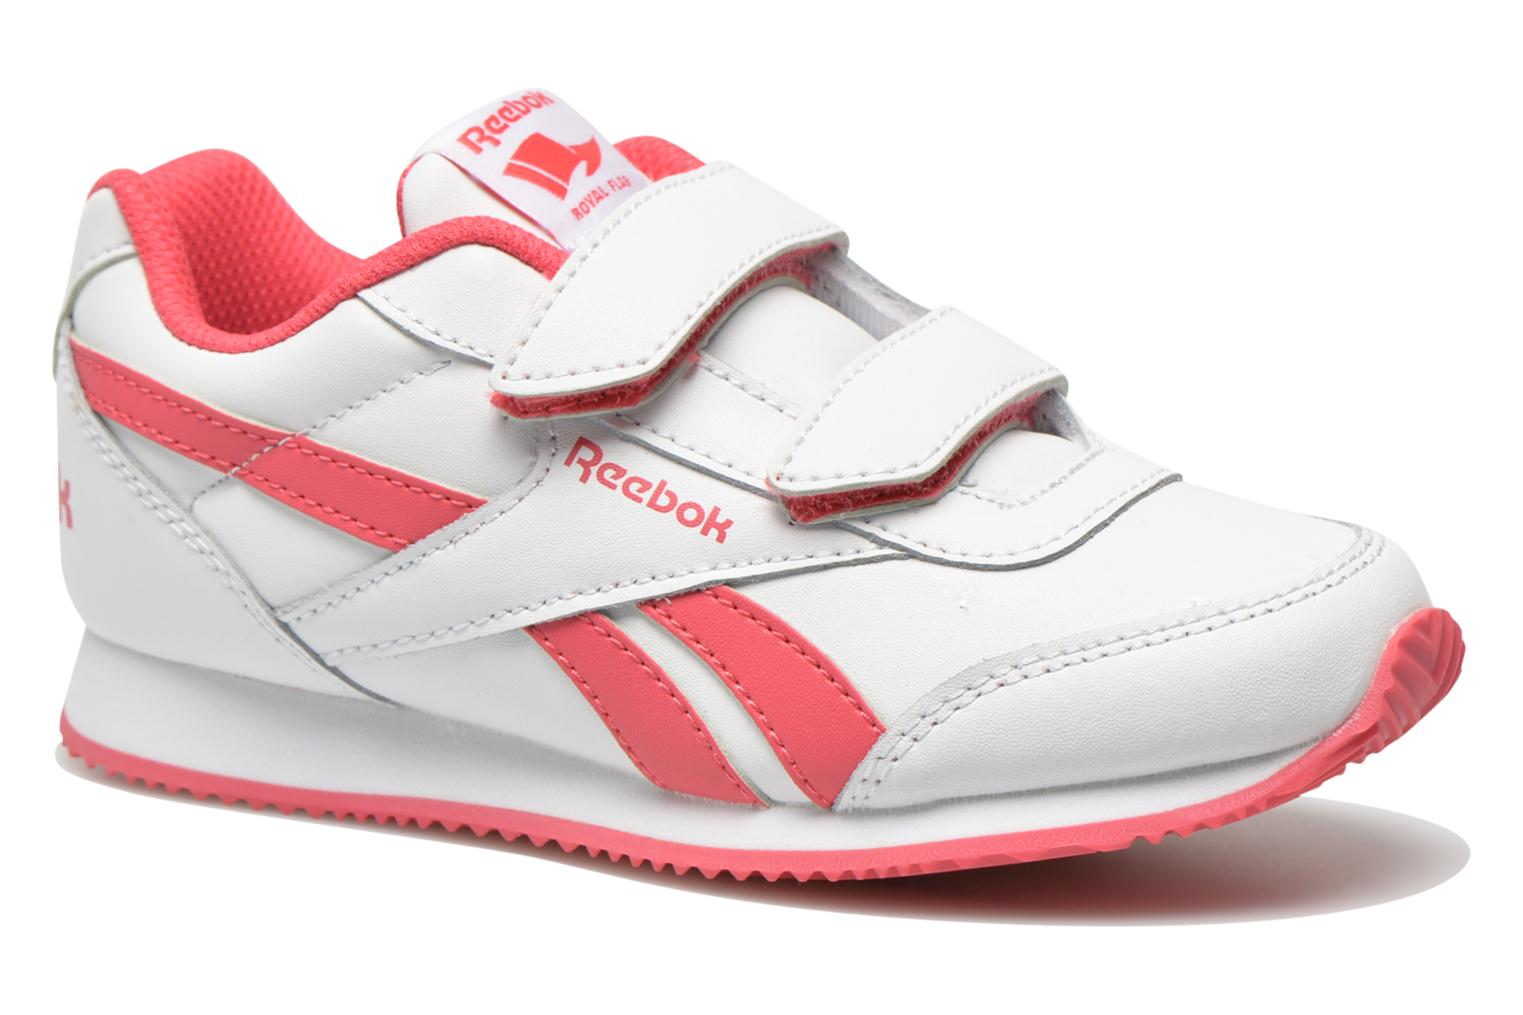 Reebok Royal Cljog 2 2V White/Fearless Pink